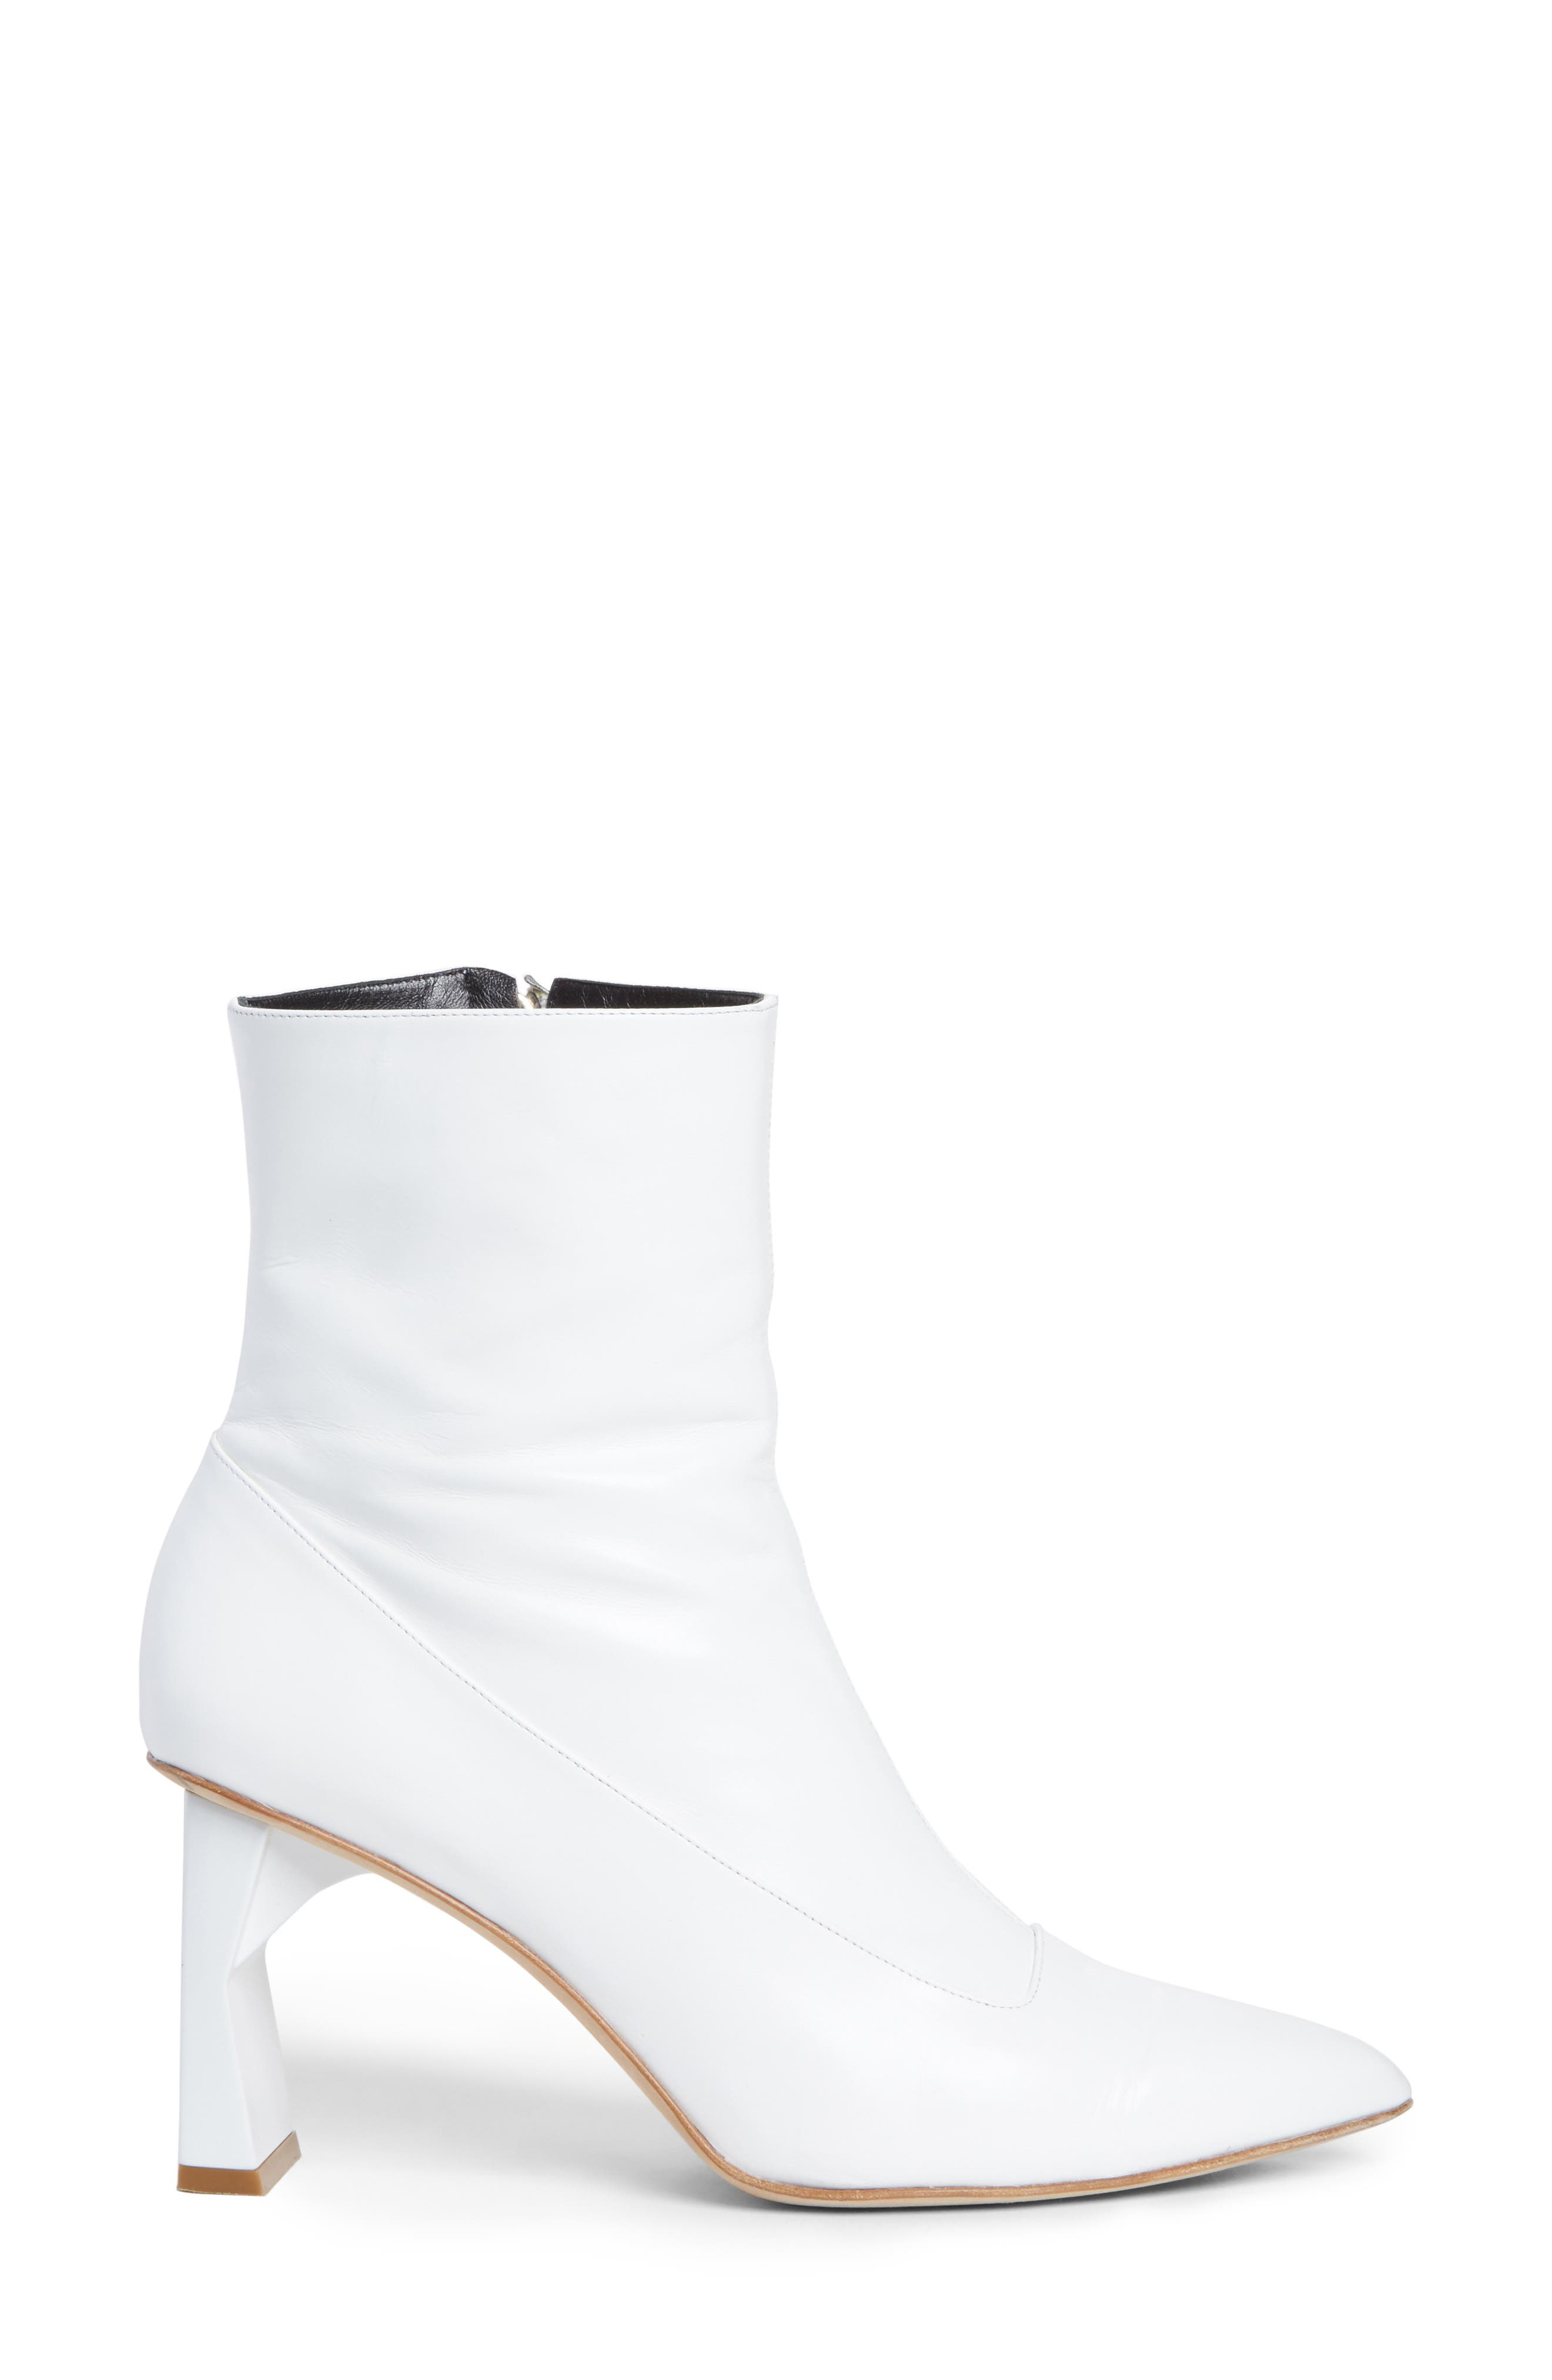 Alexis Pointy Toe Bootie,                             Alternate thumbnail 3, color,                             100